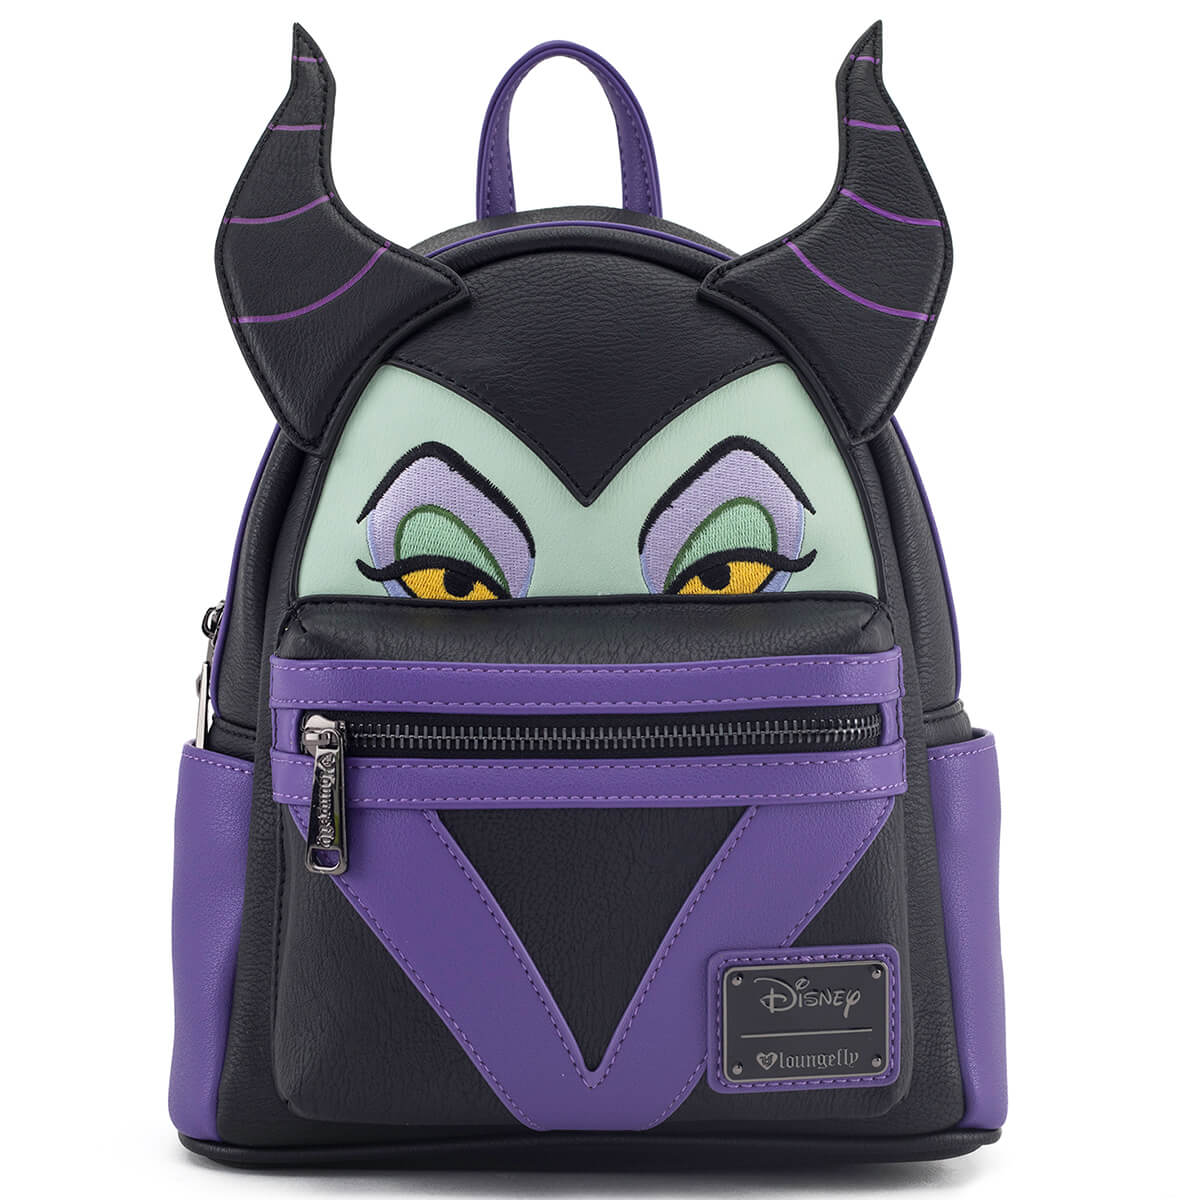 b96c3a4bc99 Loungefly Disney Maleficent Face Mini Backpack. Description